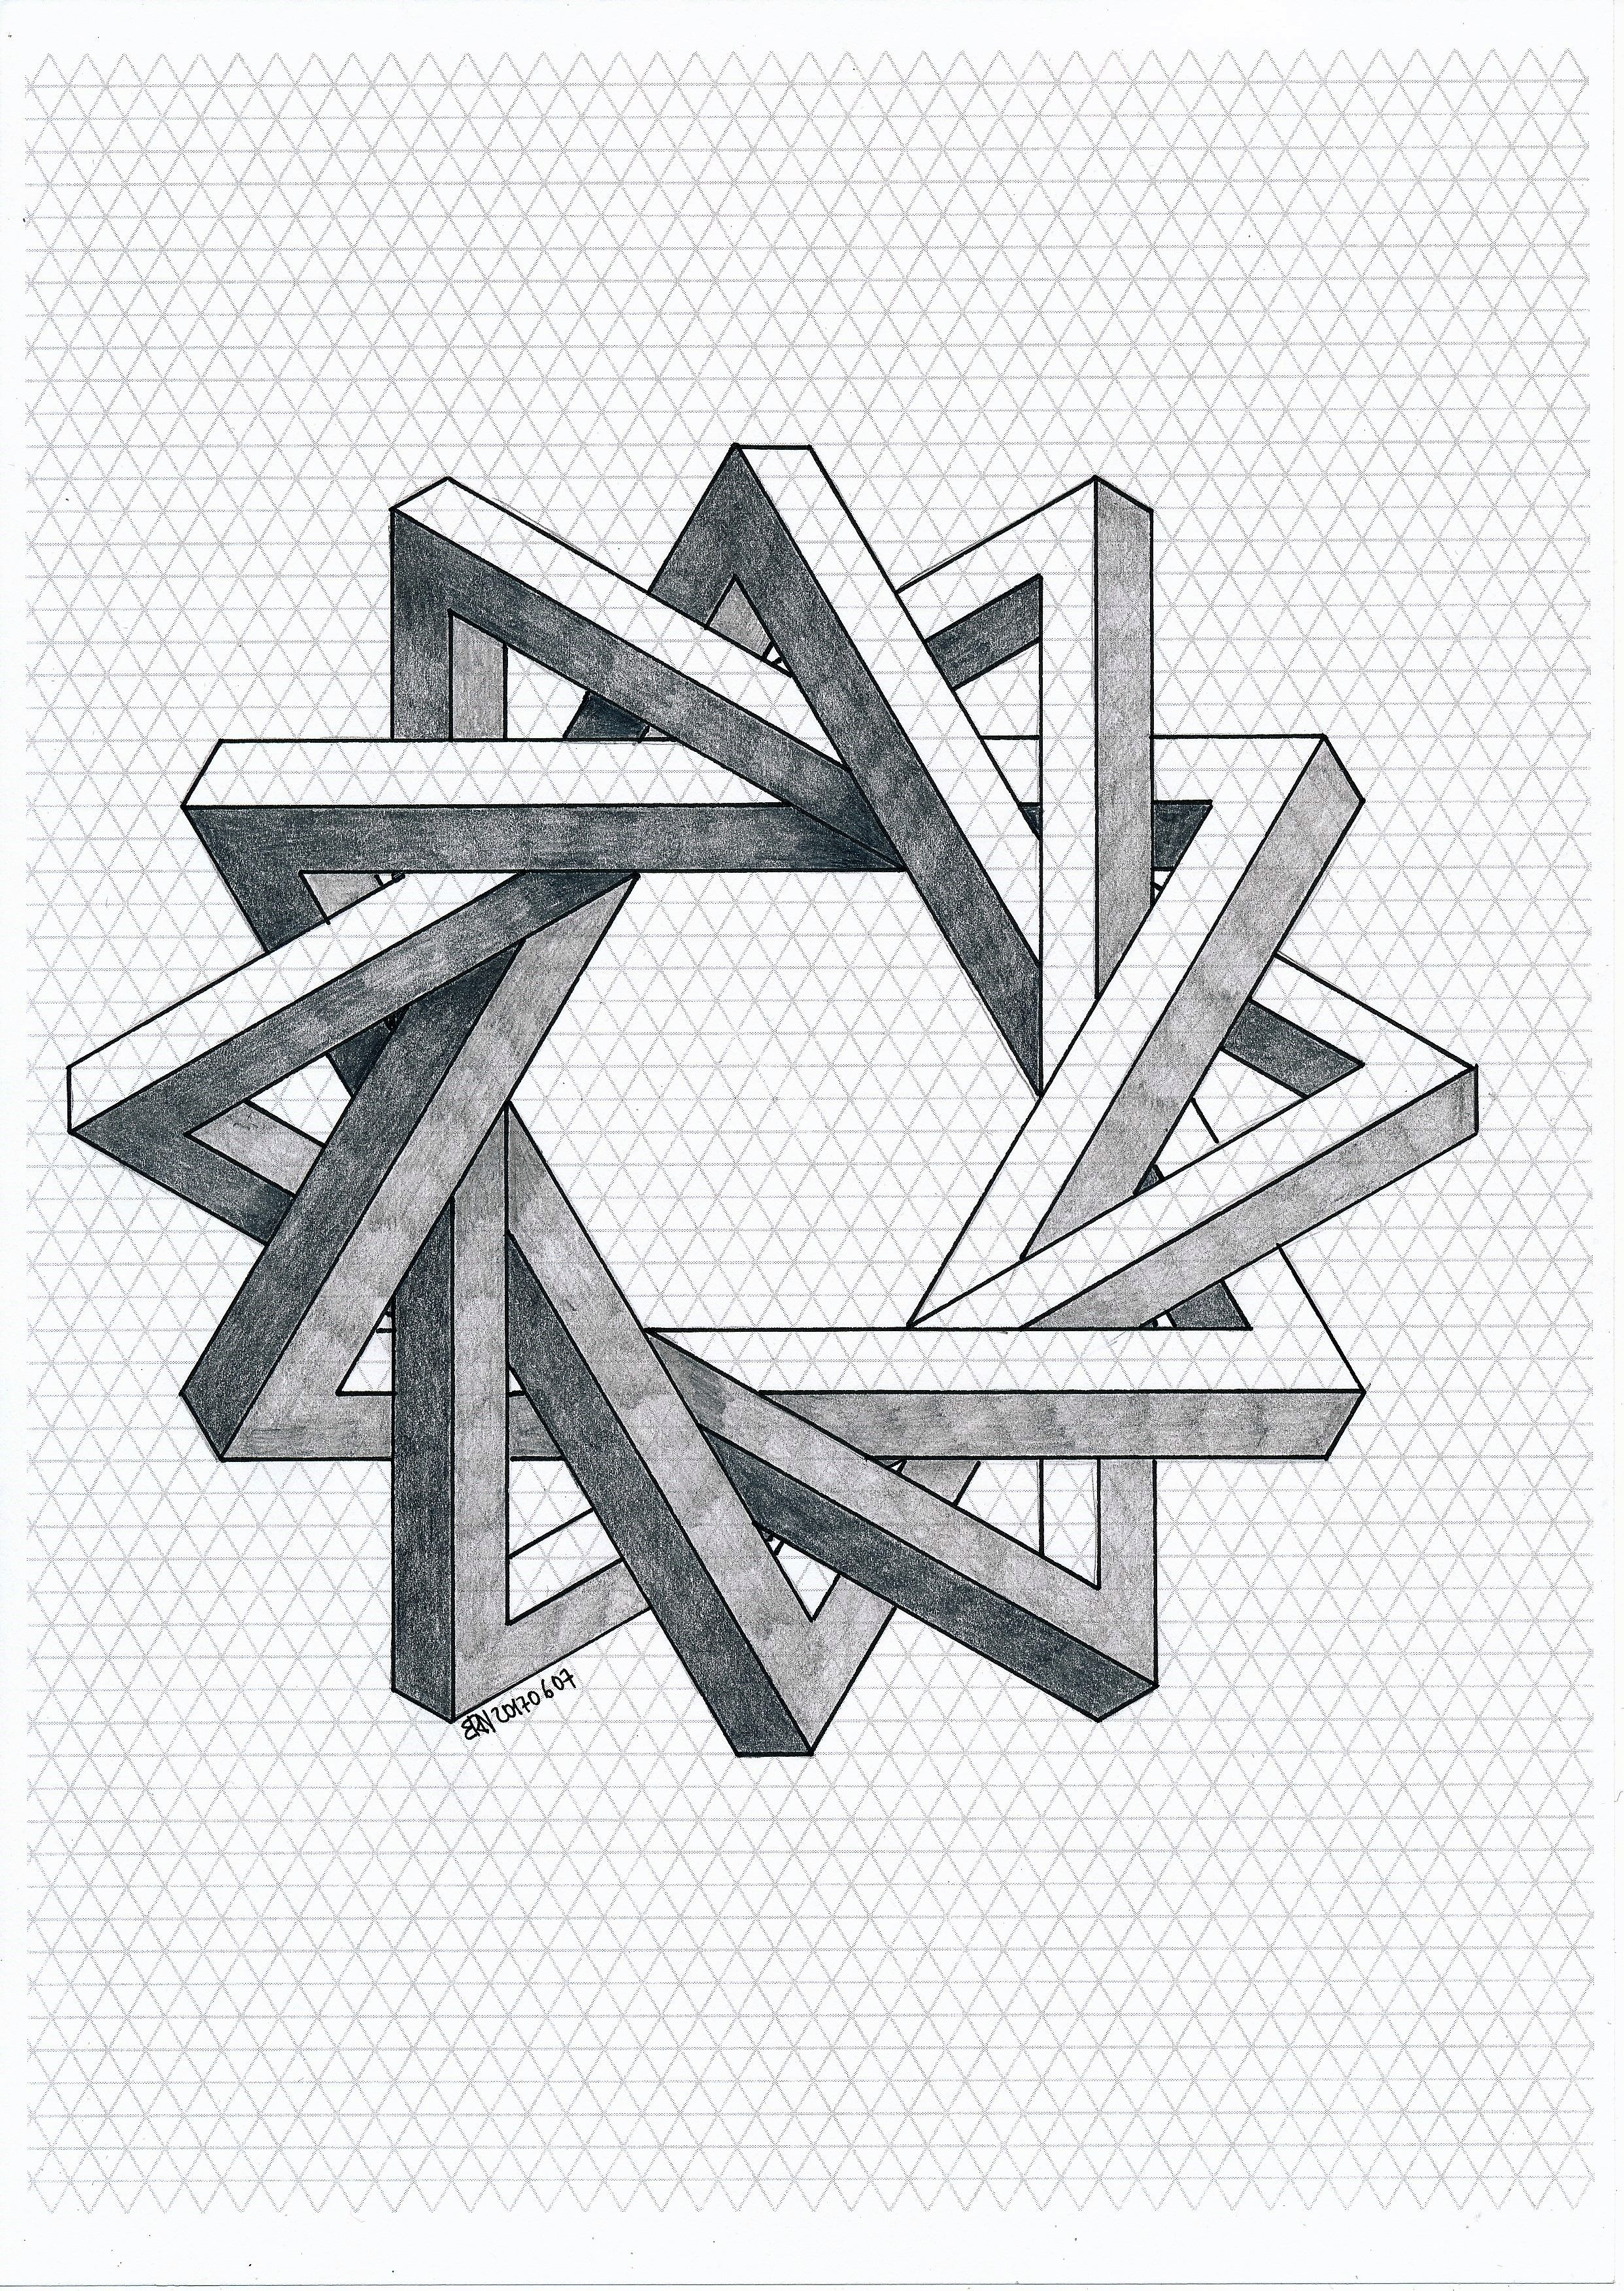 #impossible #isometric #geometry #symmetry #pattern #